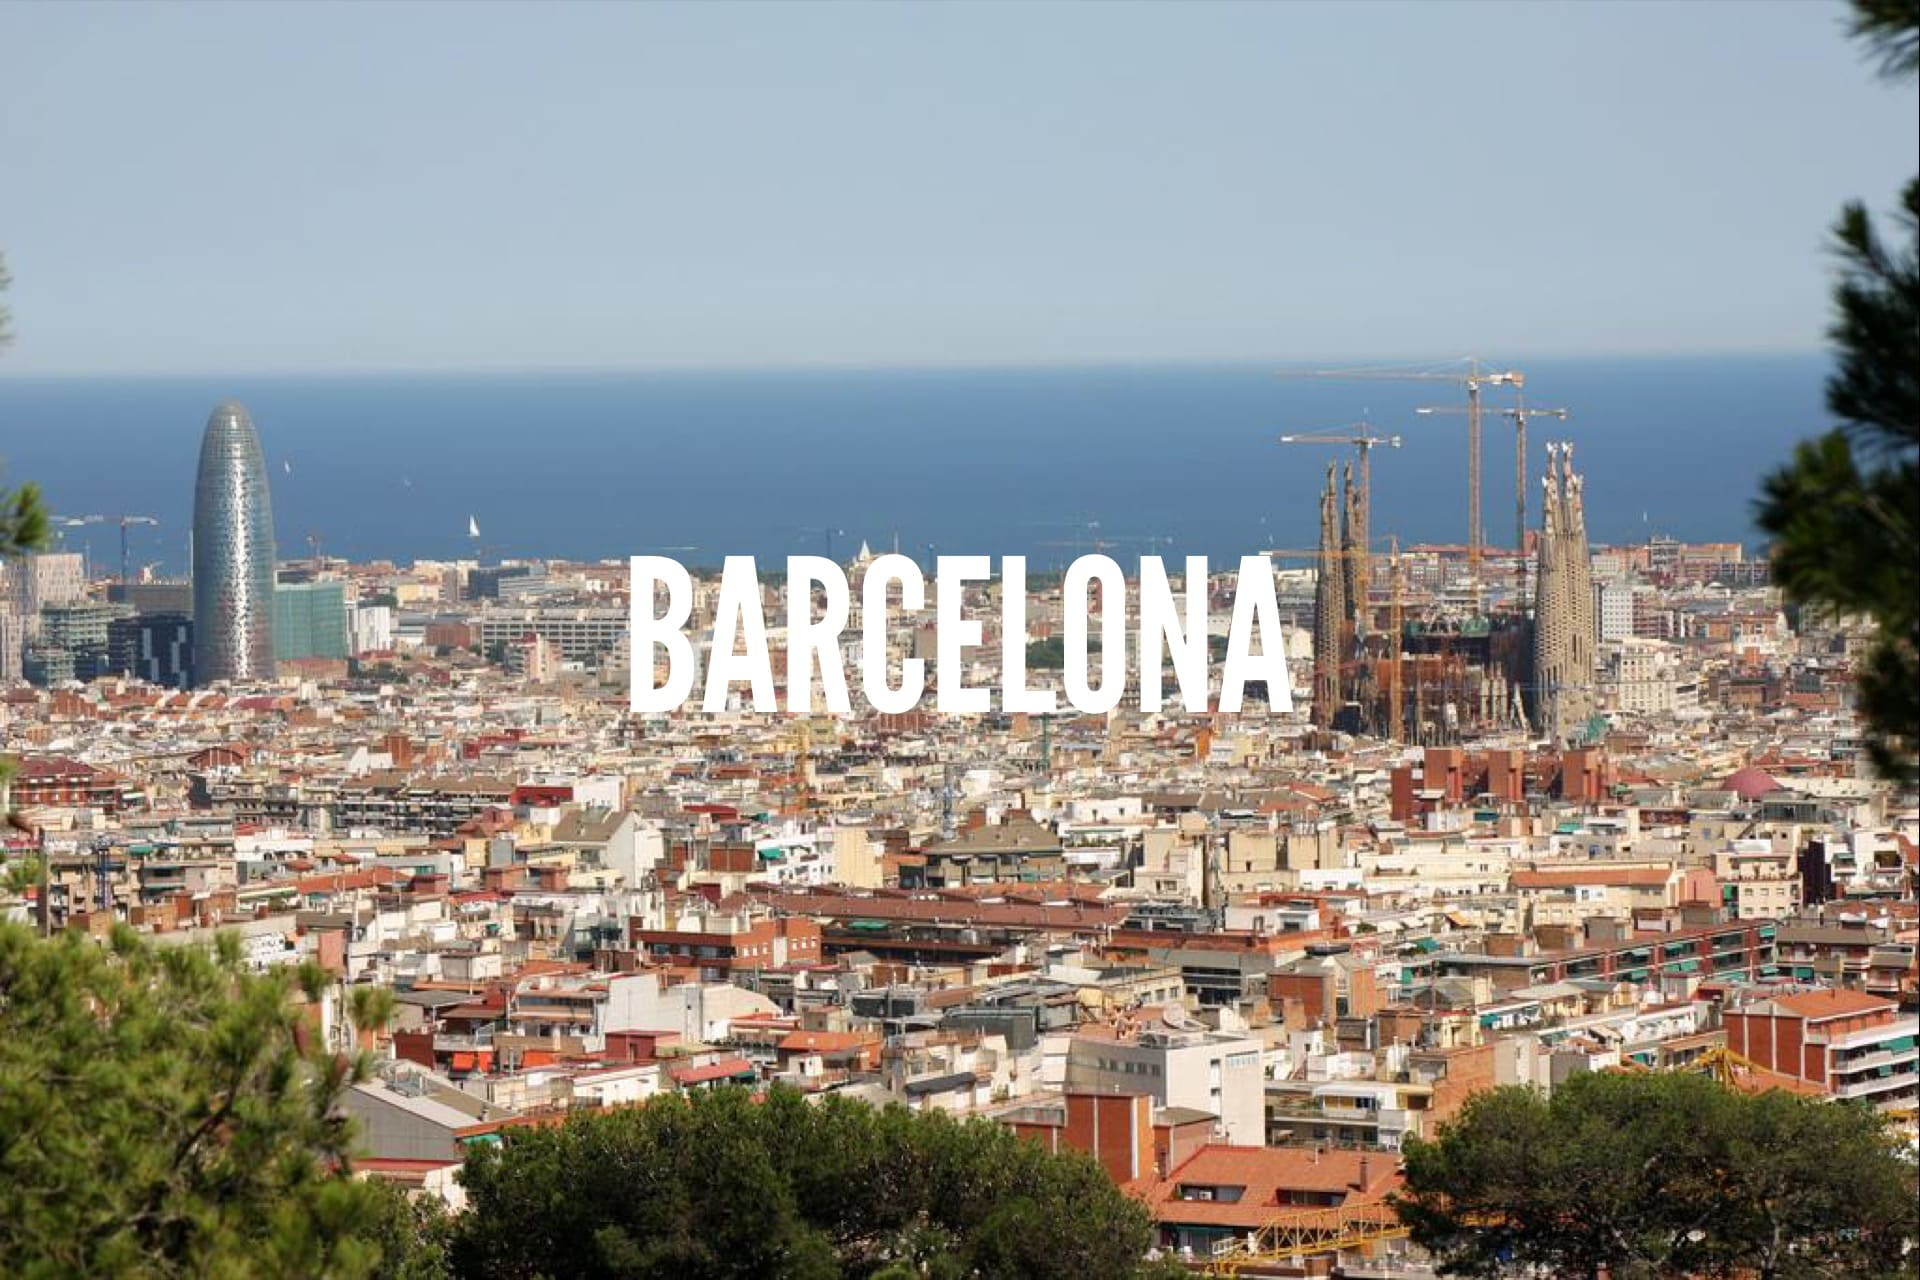 Barcelona Image: Barcelona City Tour (Exciting!)